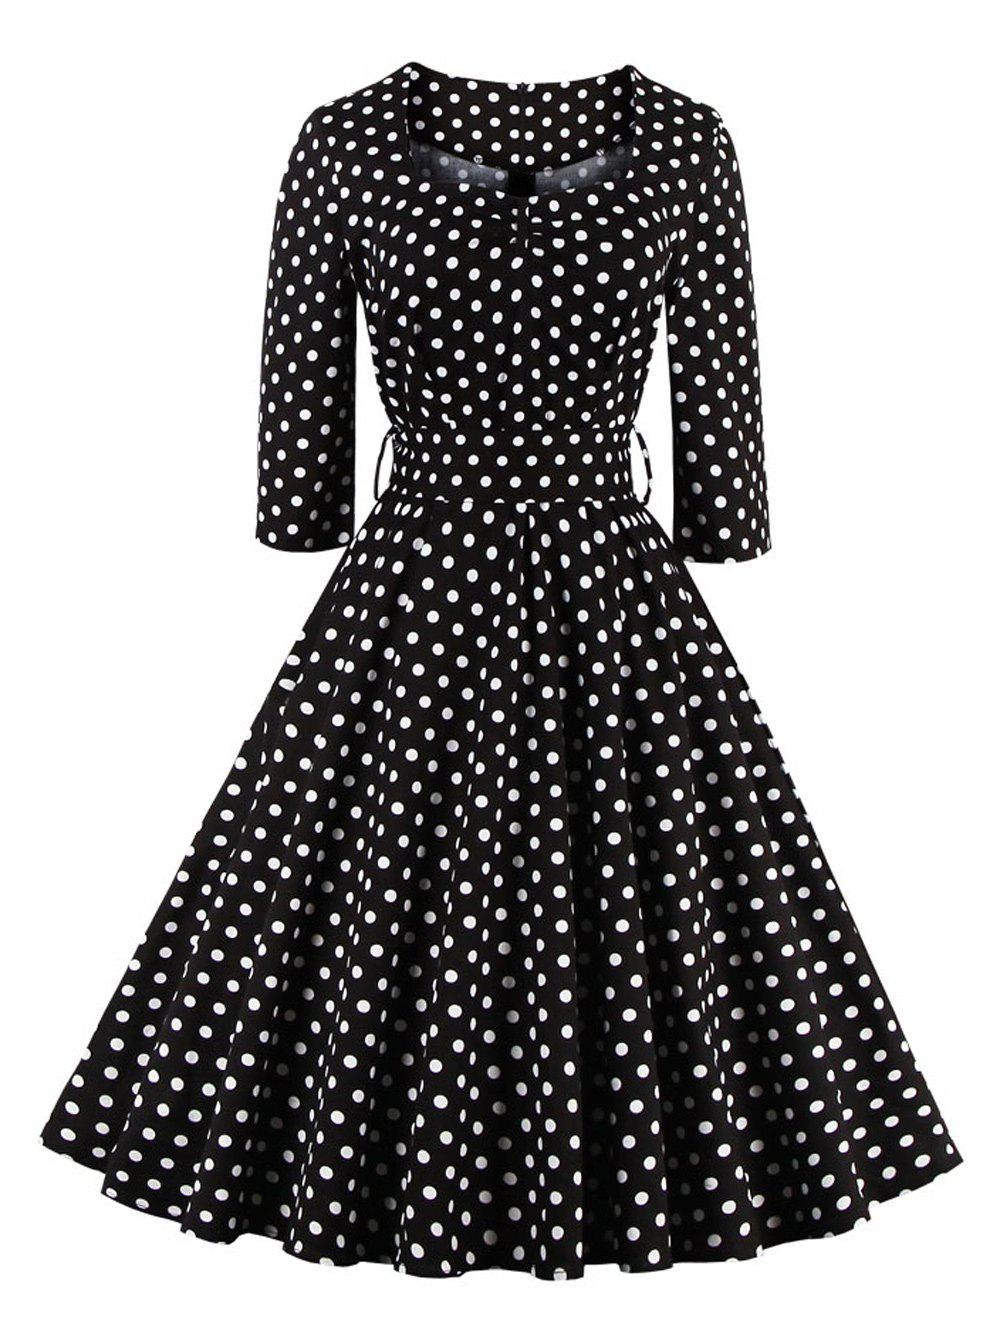 Retro Sweetheart Neck Polka Dot Printed Swing Flare Dress - BLACK M